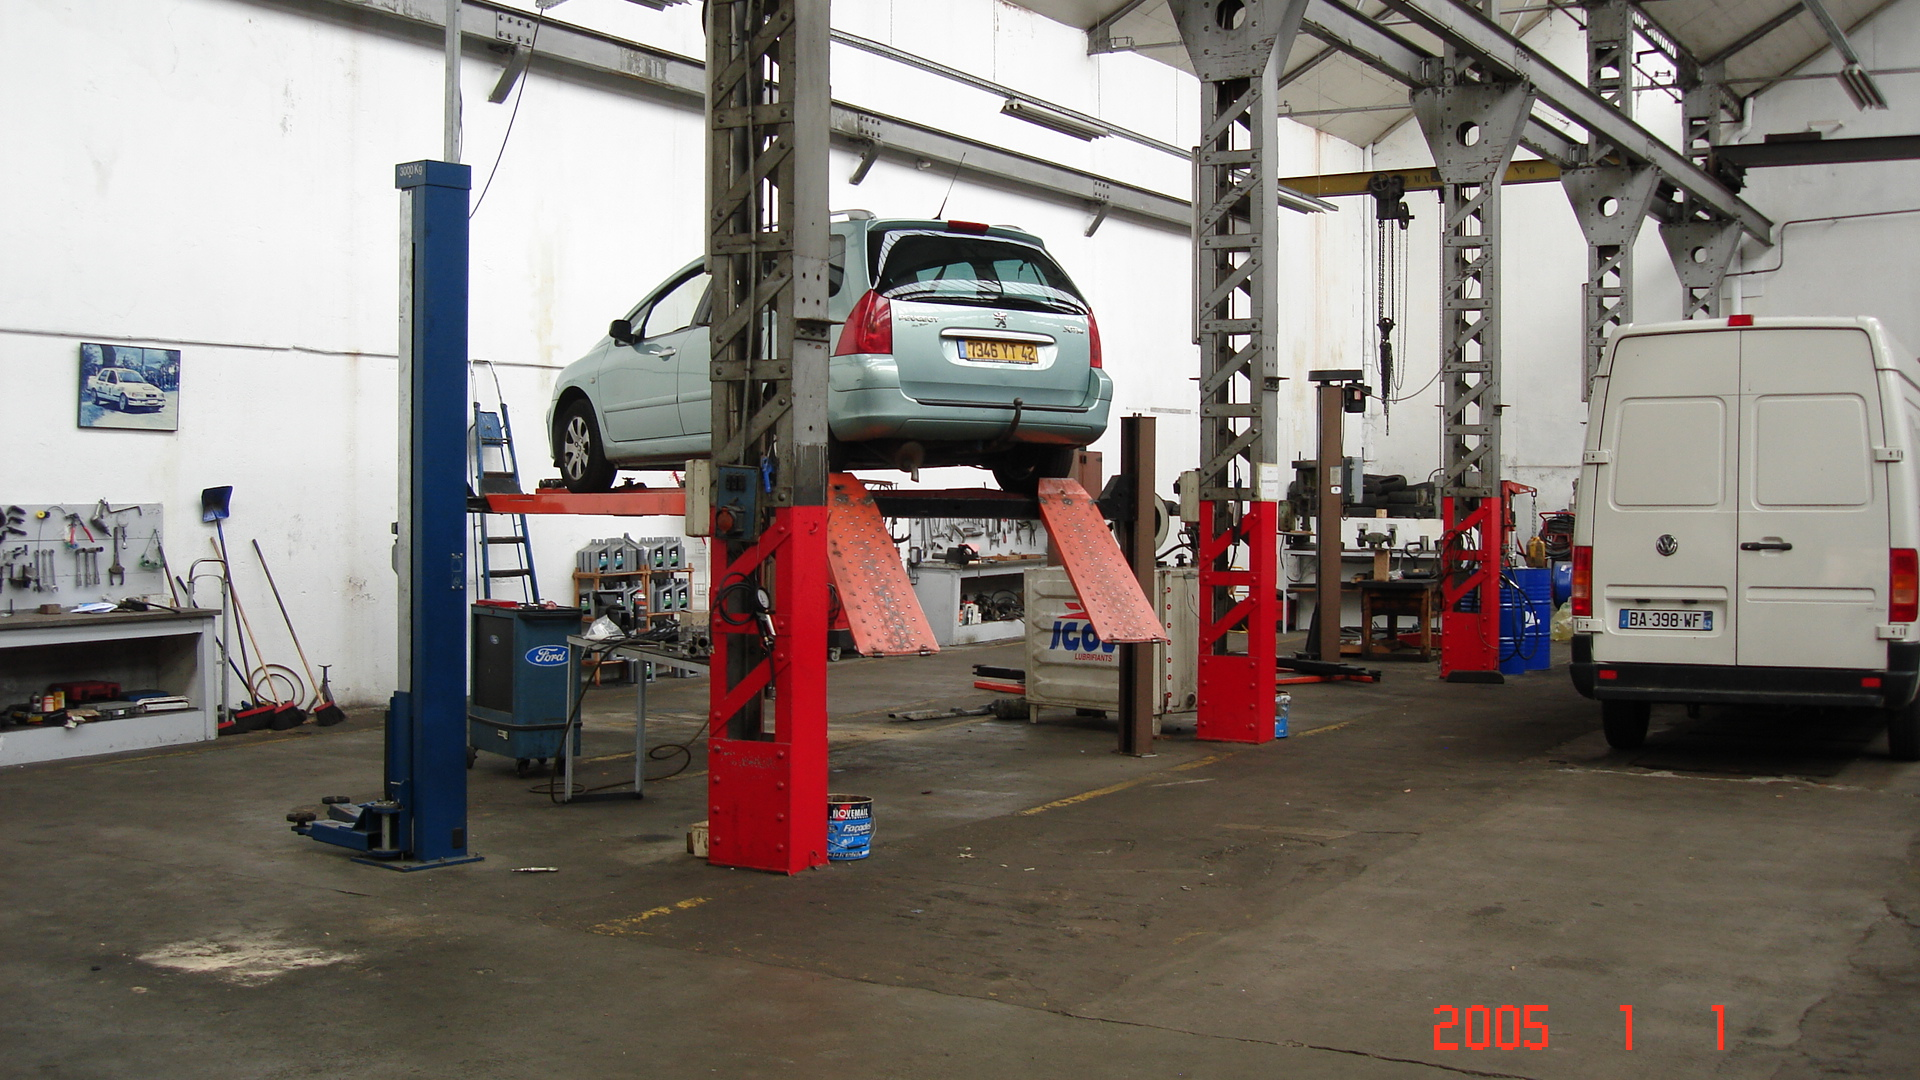 Comment trouver un bon garage pr s de chez soi voiture for Garage automobile saint etienne